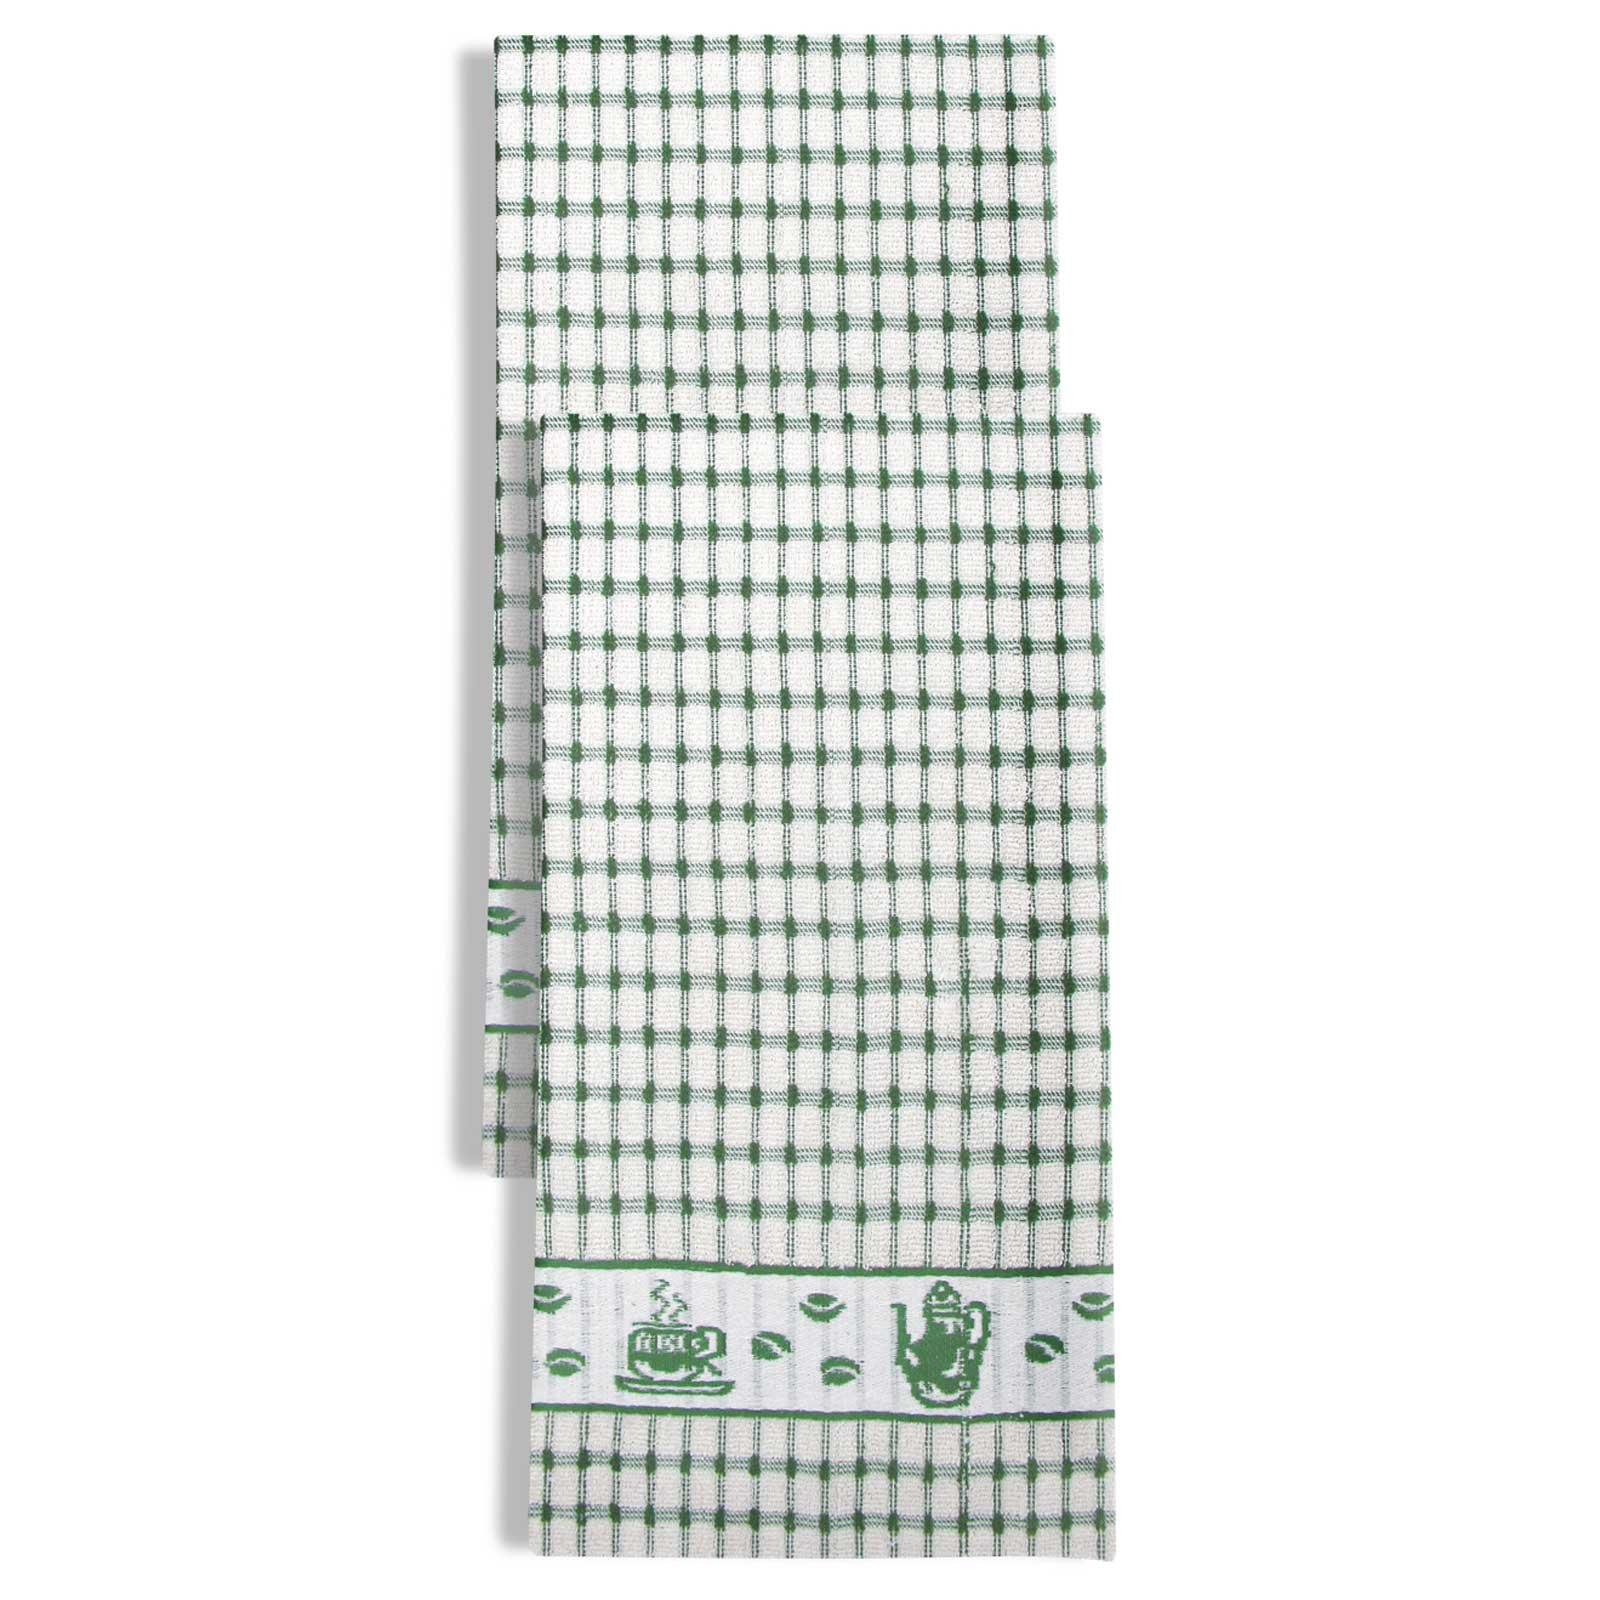 Packs-of-2-4-6-12-Tea-Towels-100-Cotton-Terry-Kitchen-Dish-Drying-Towel-Sets thumbnail 24